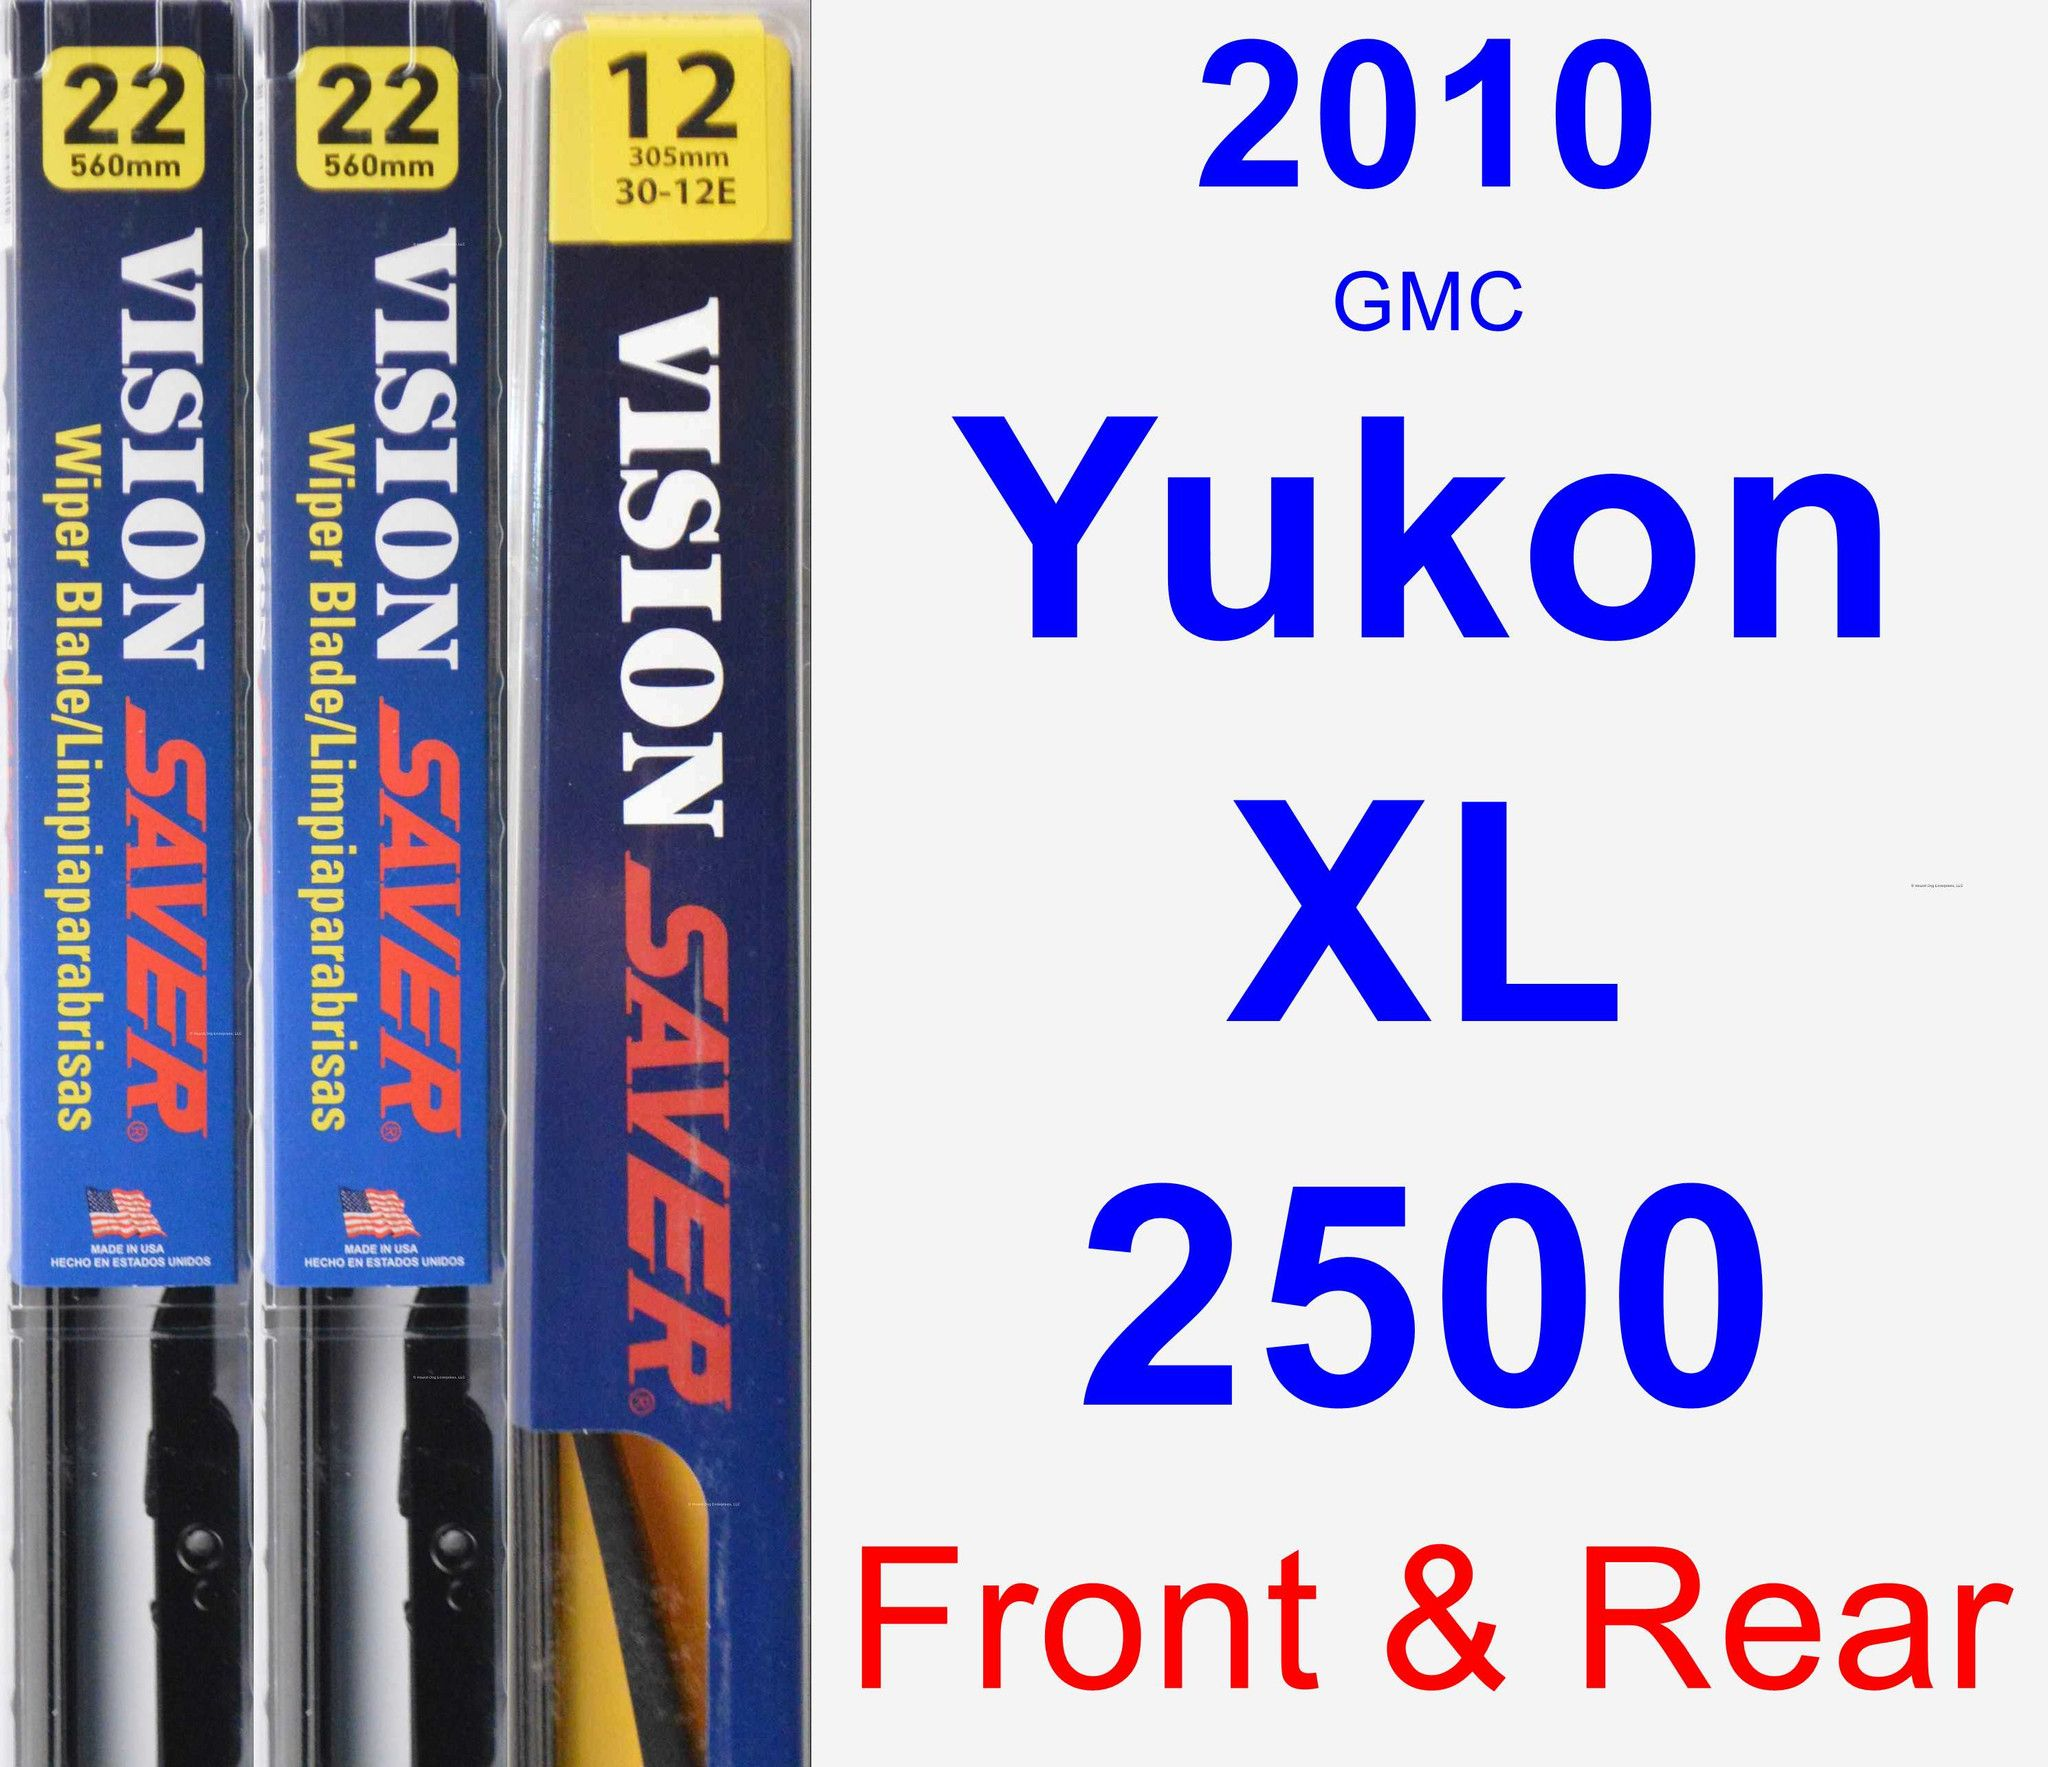 Front Rear Wiper Blade Pack For 2010 Gmc Yukon Xl 2500 Vision